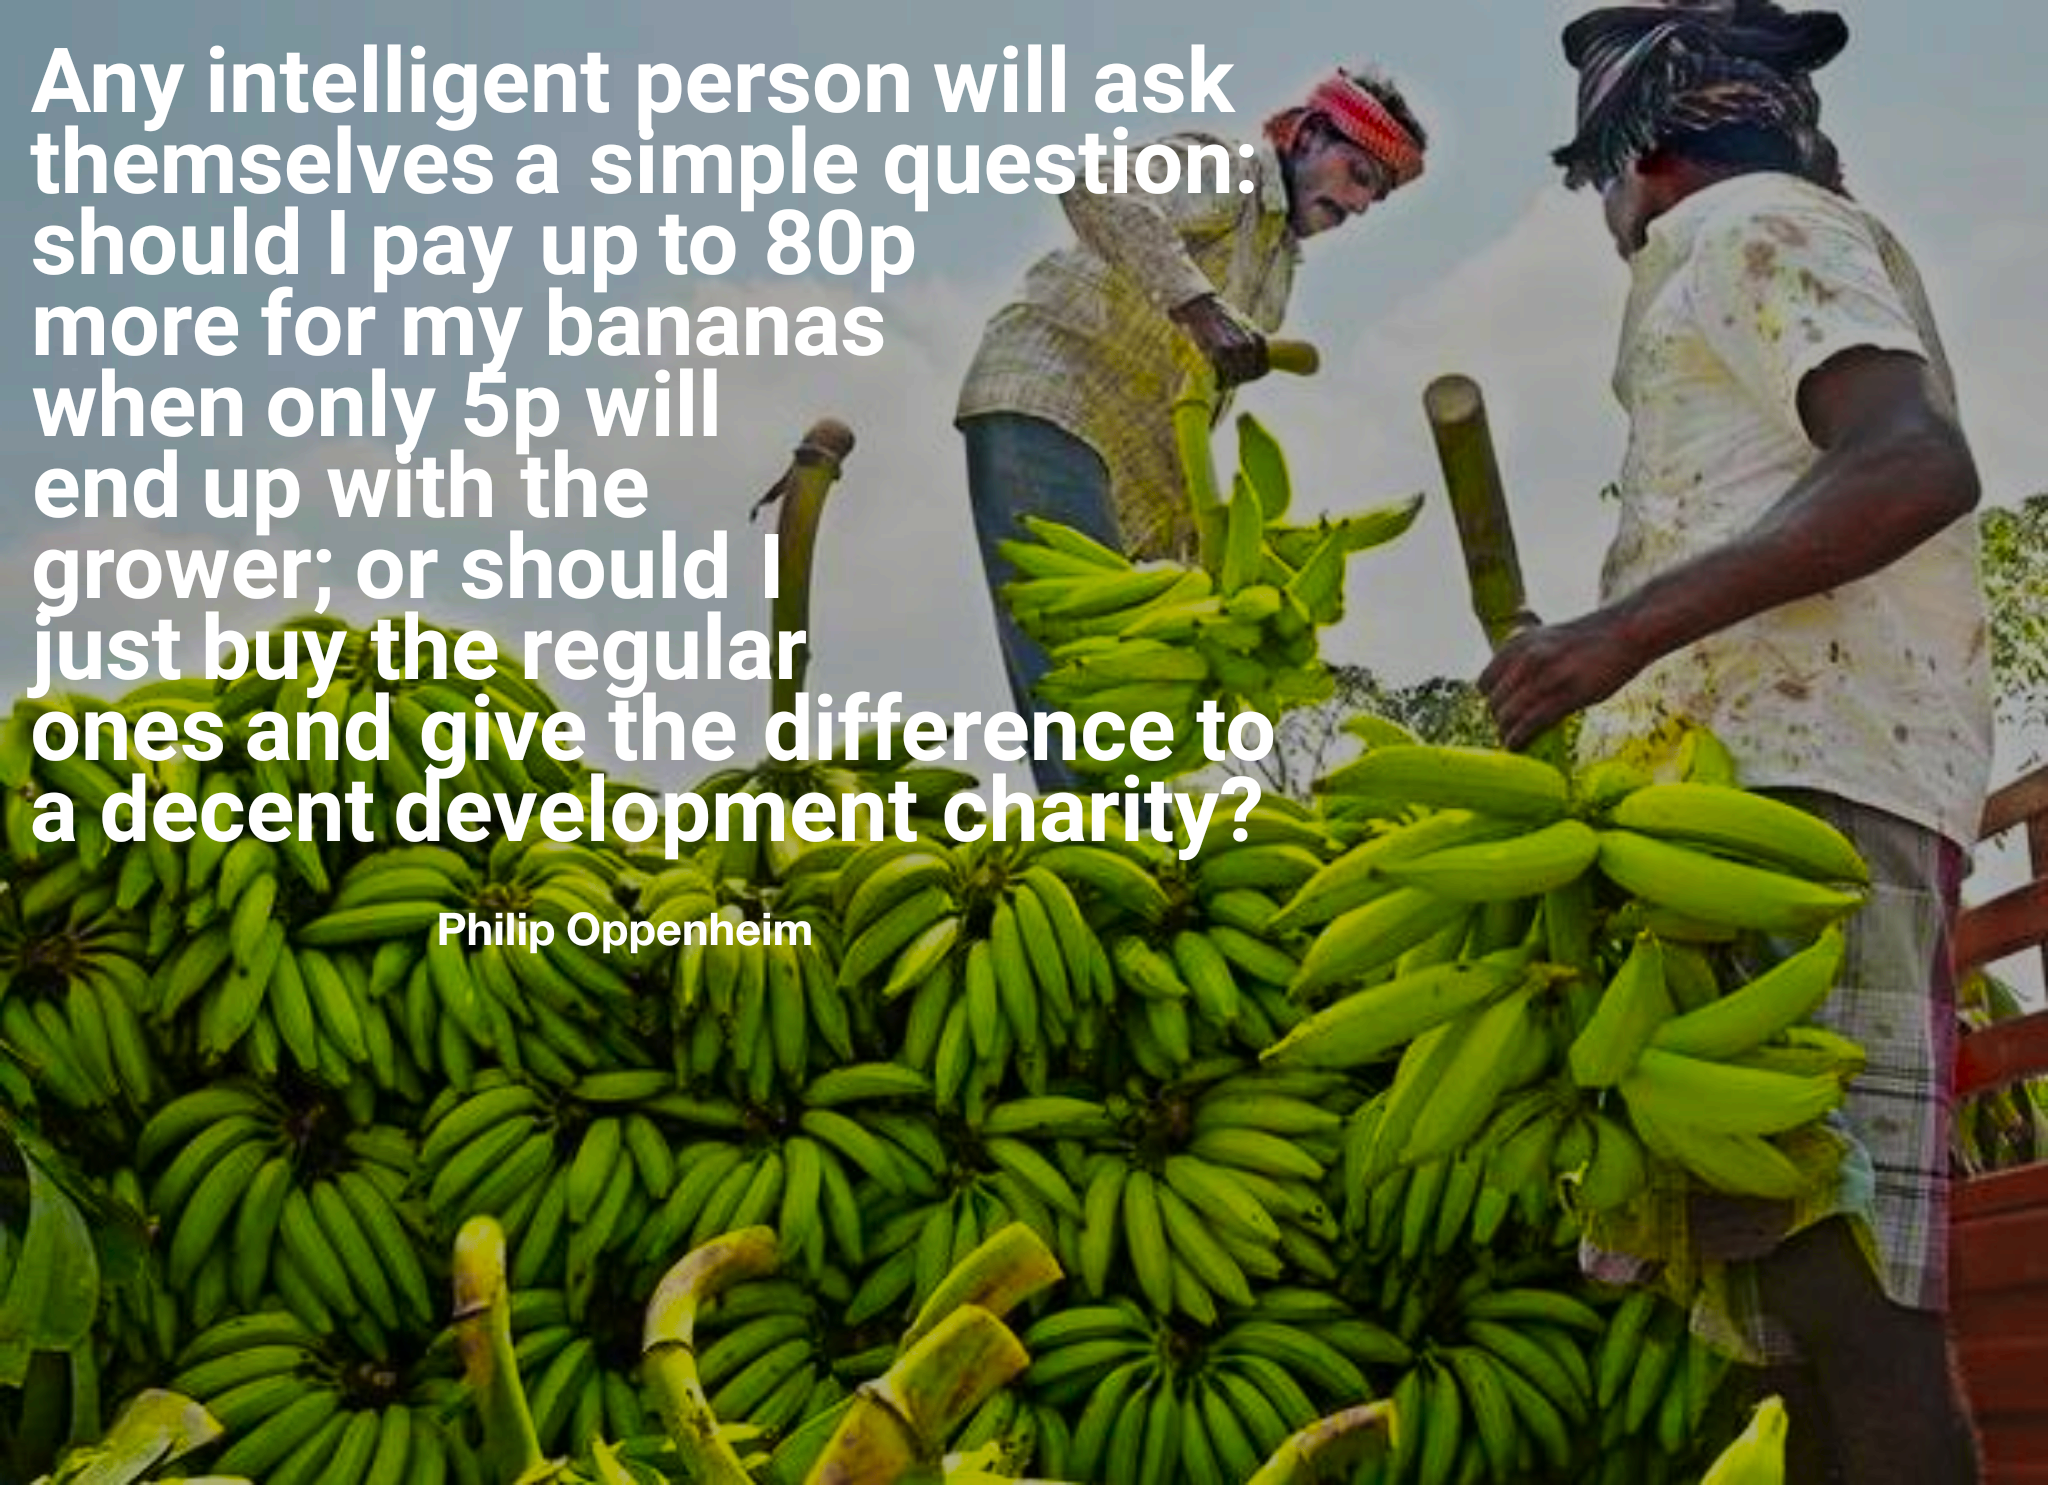 """Any intelligent person will ask themselves a simple question: Should I pay up to 80p more for my bananas when only 5p will end up with the grower…"" -Philip Oppenheim [2048×1485]"